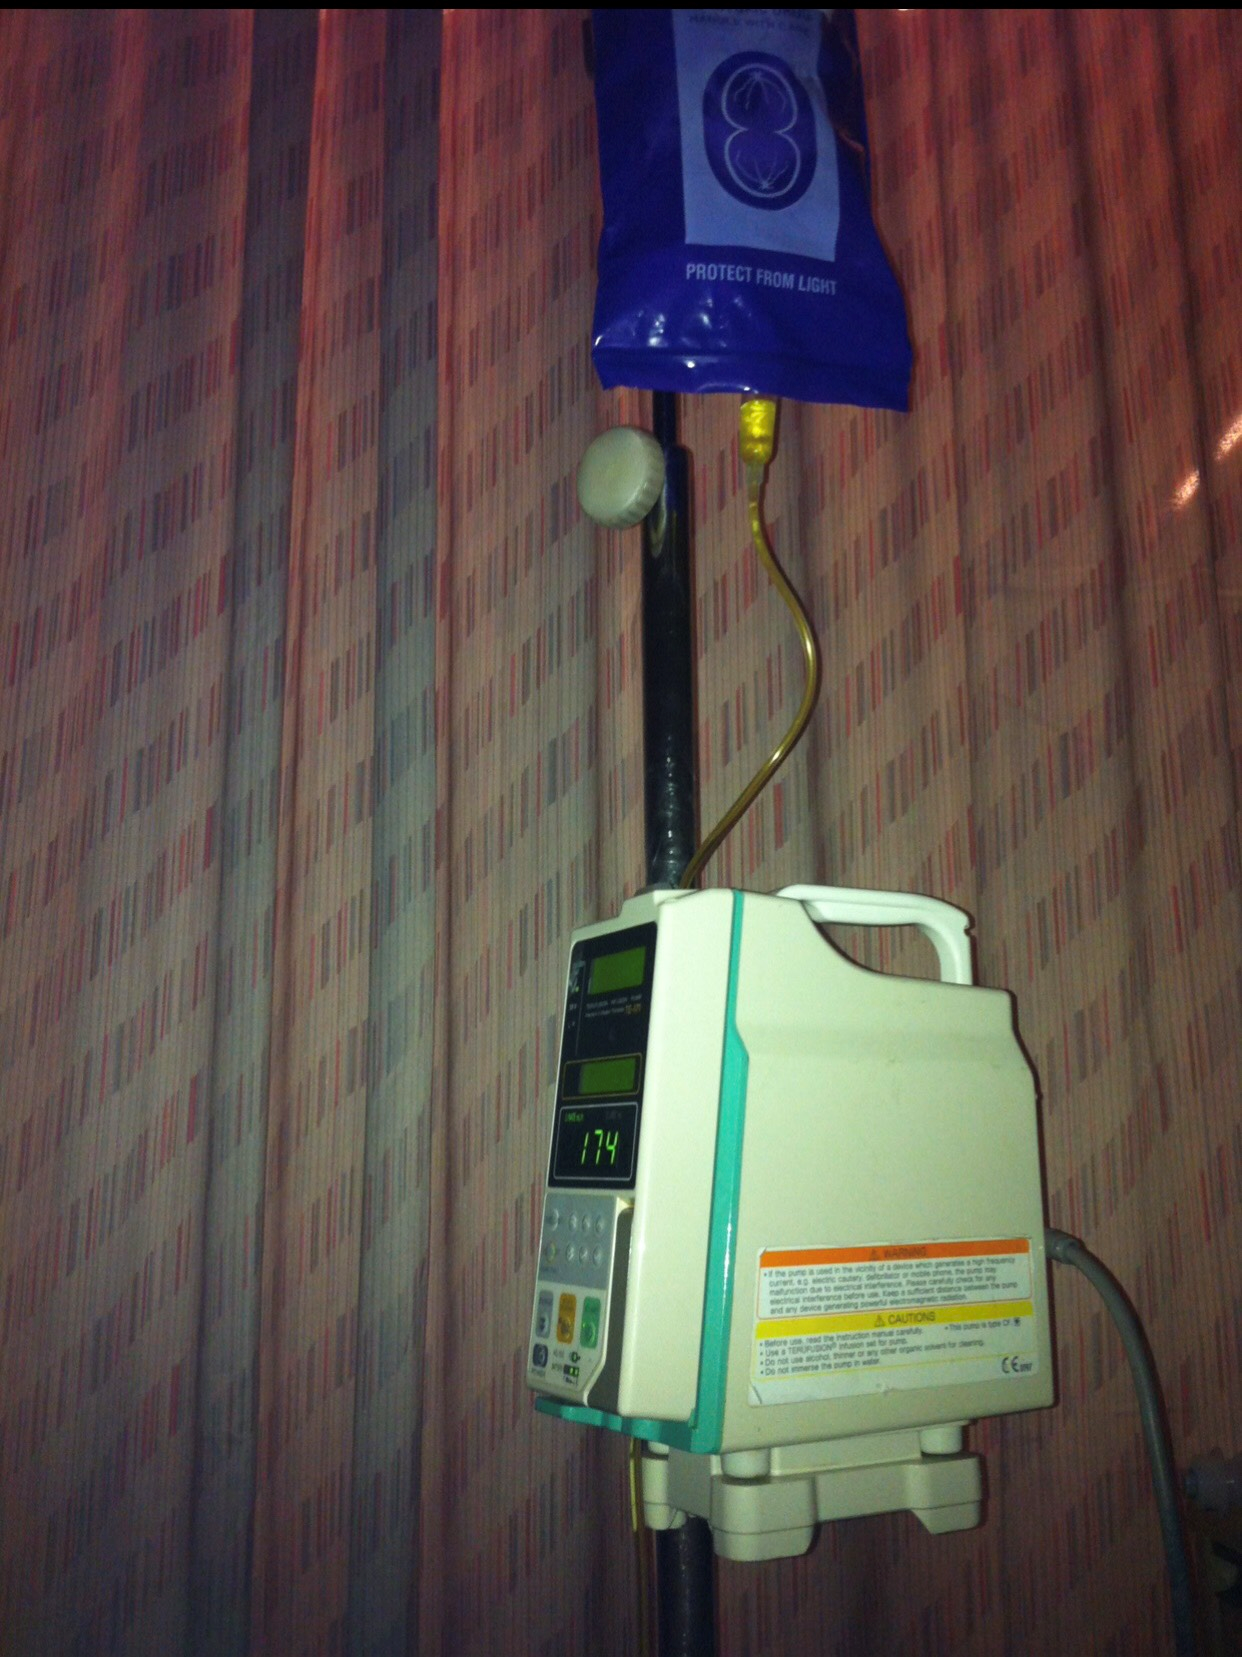 The chemo machine that saves and kills lives